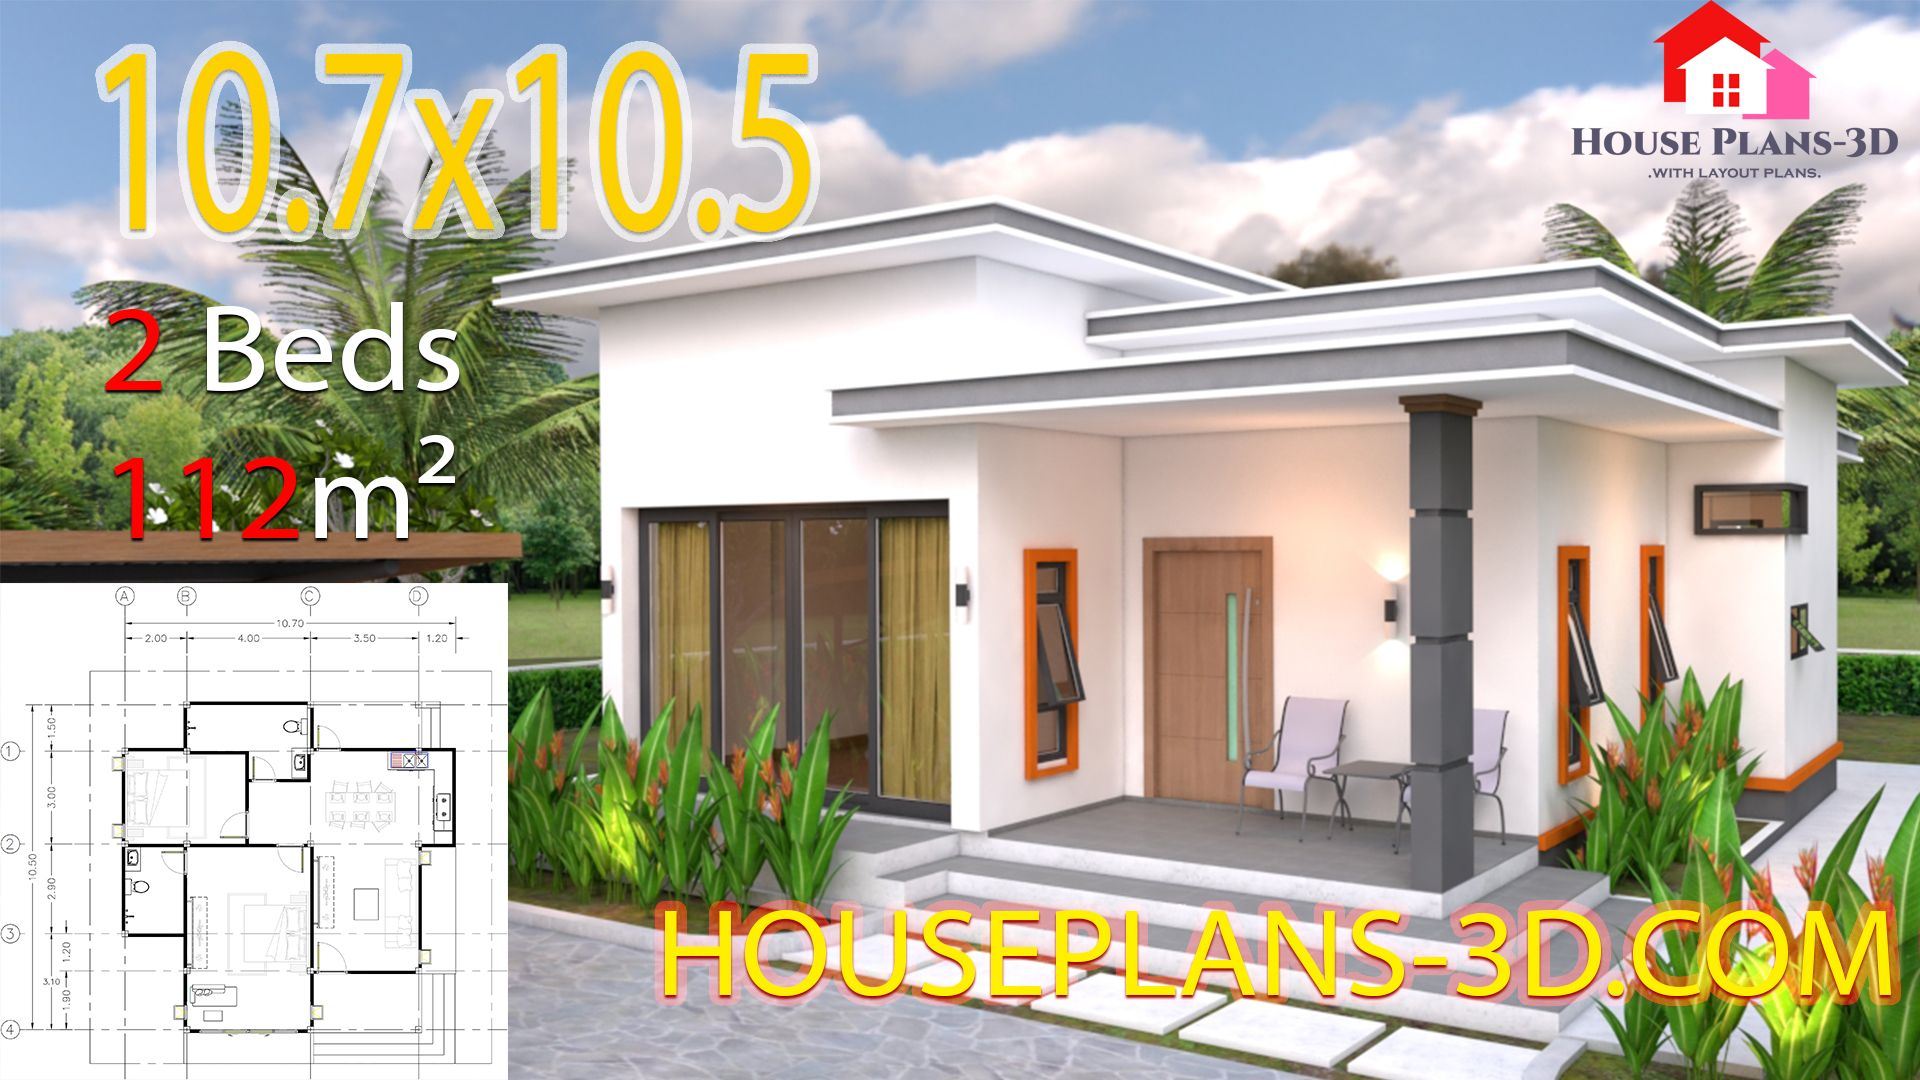 House Plans 10 7x10 5 With 2 Bedrooms Flat Roof The House Has Car Parking And Garden Living Room Dining Room In 2020 House Plans Small House Design Plans House Roof